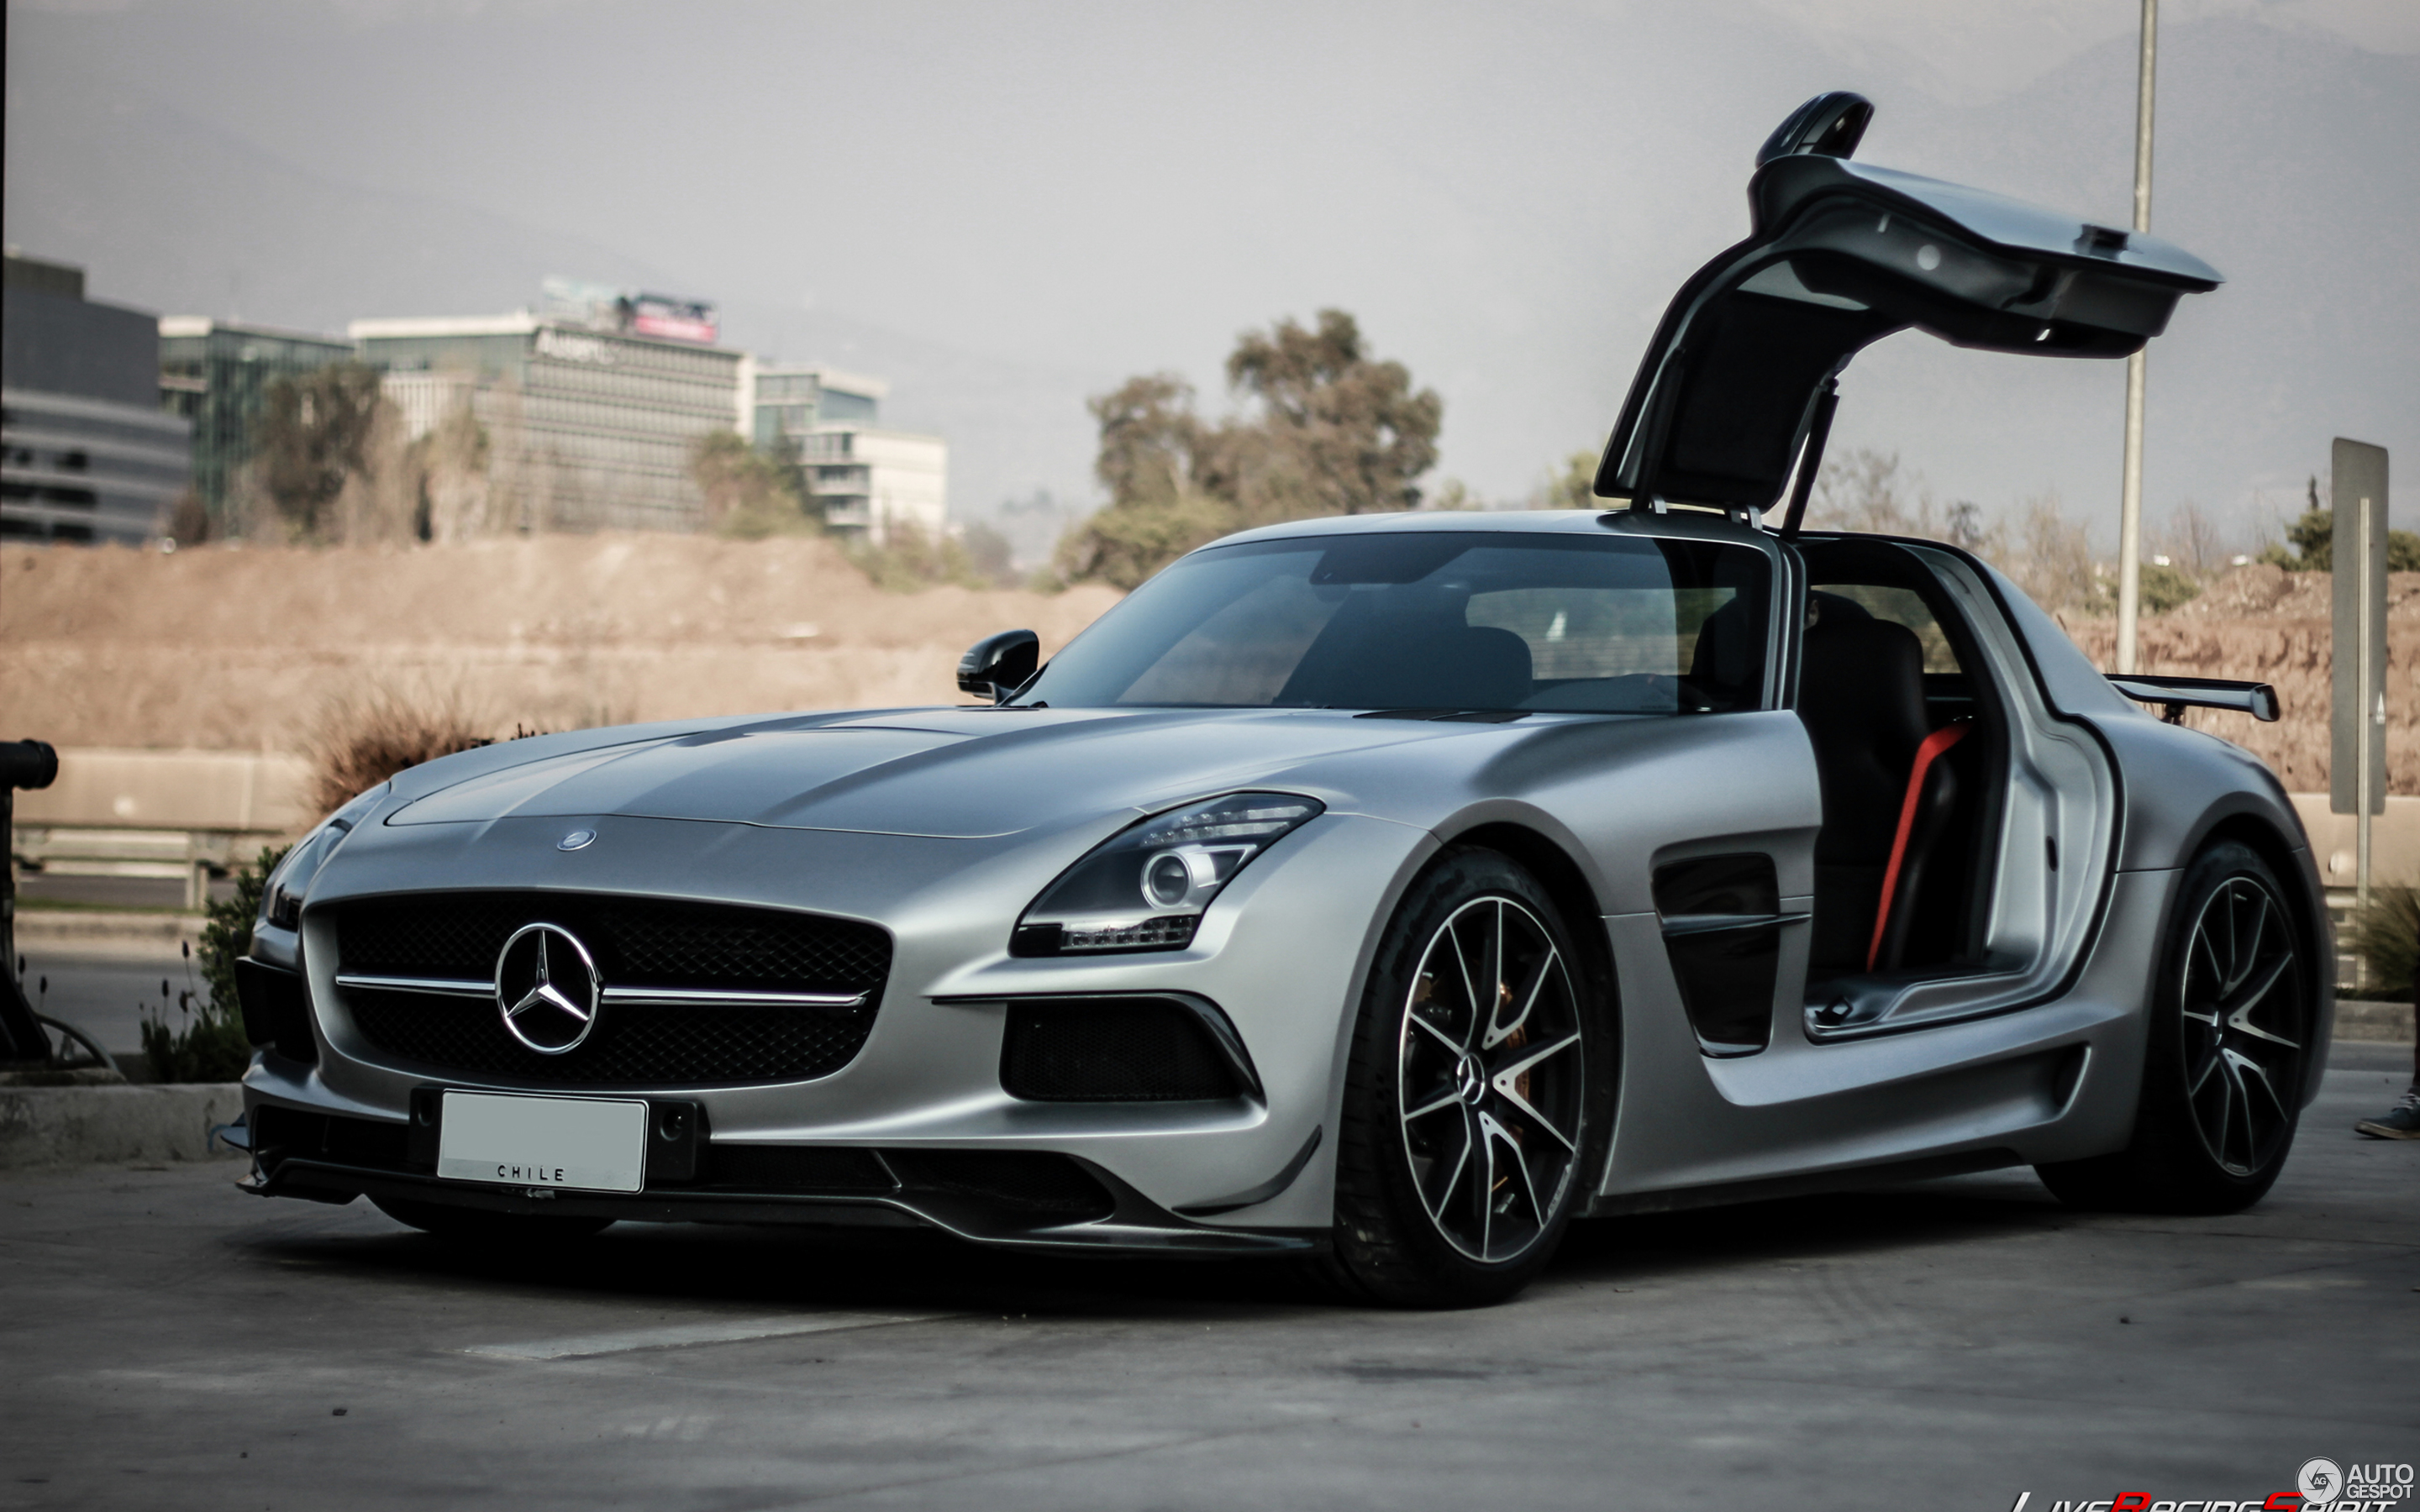 Mercedes Benz Sls Amg Black Series 3 February 2016 Autogespot